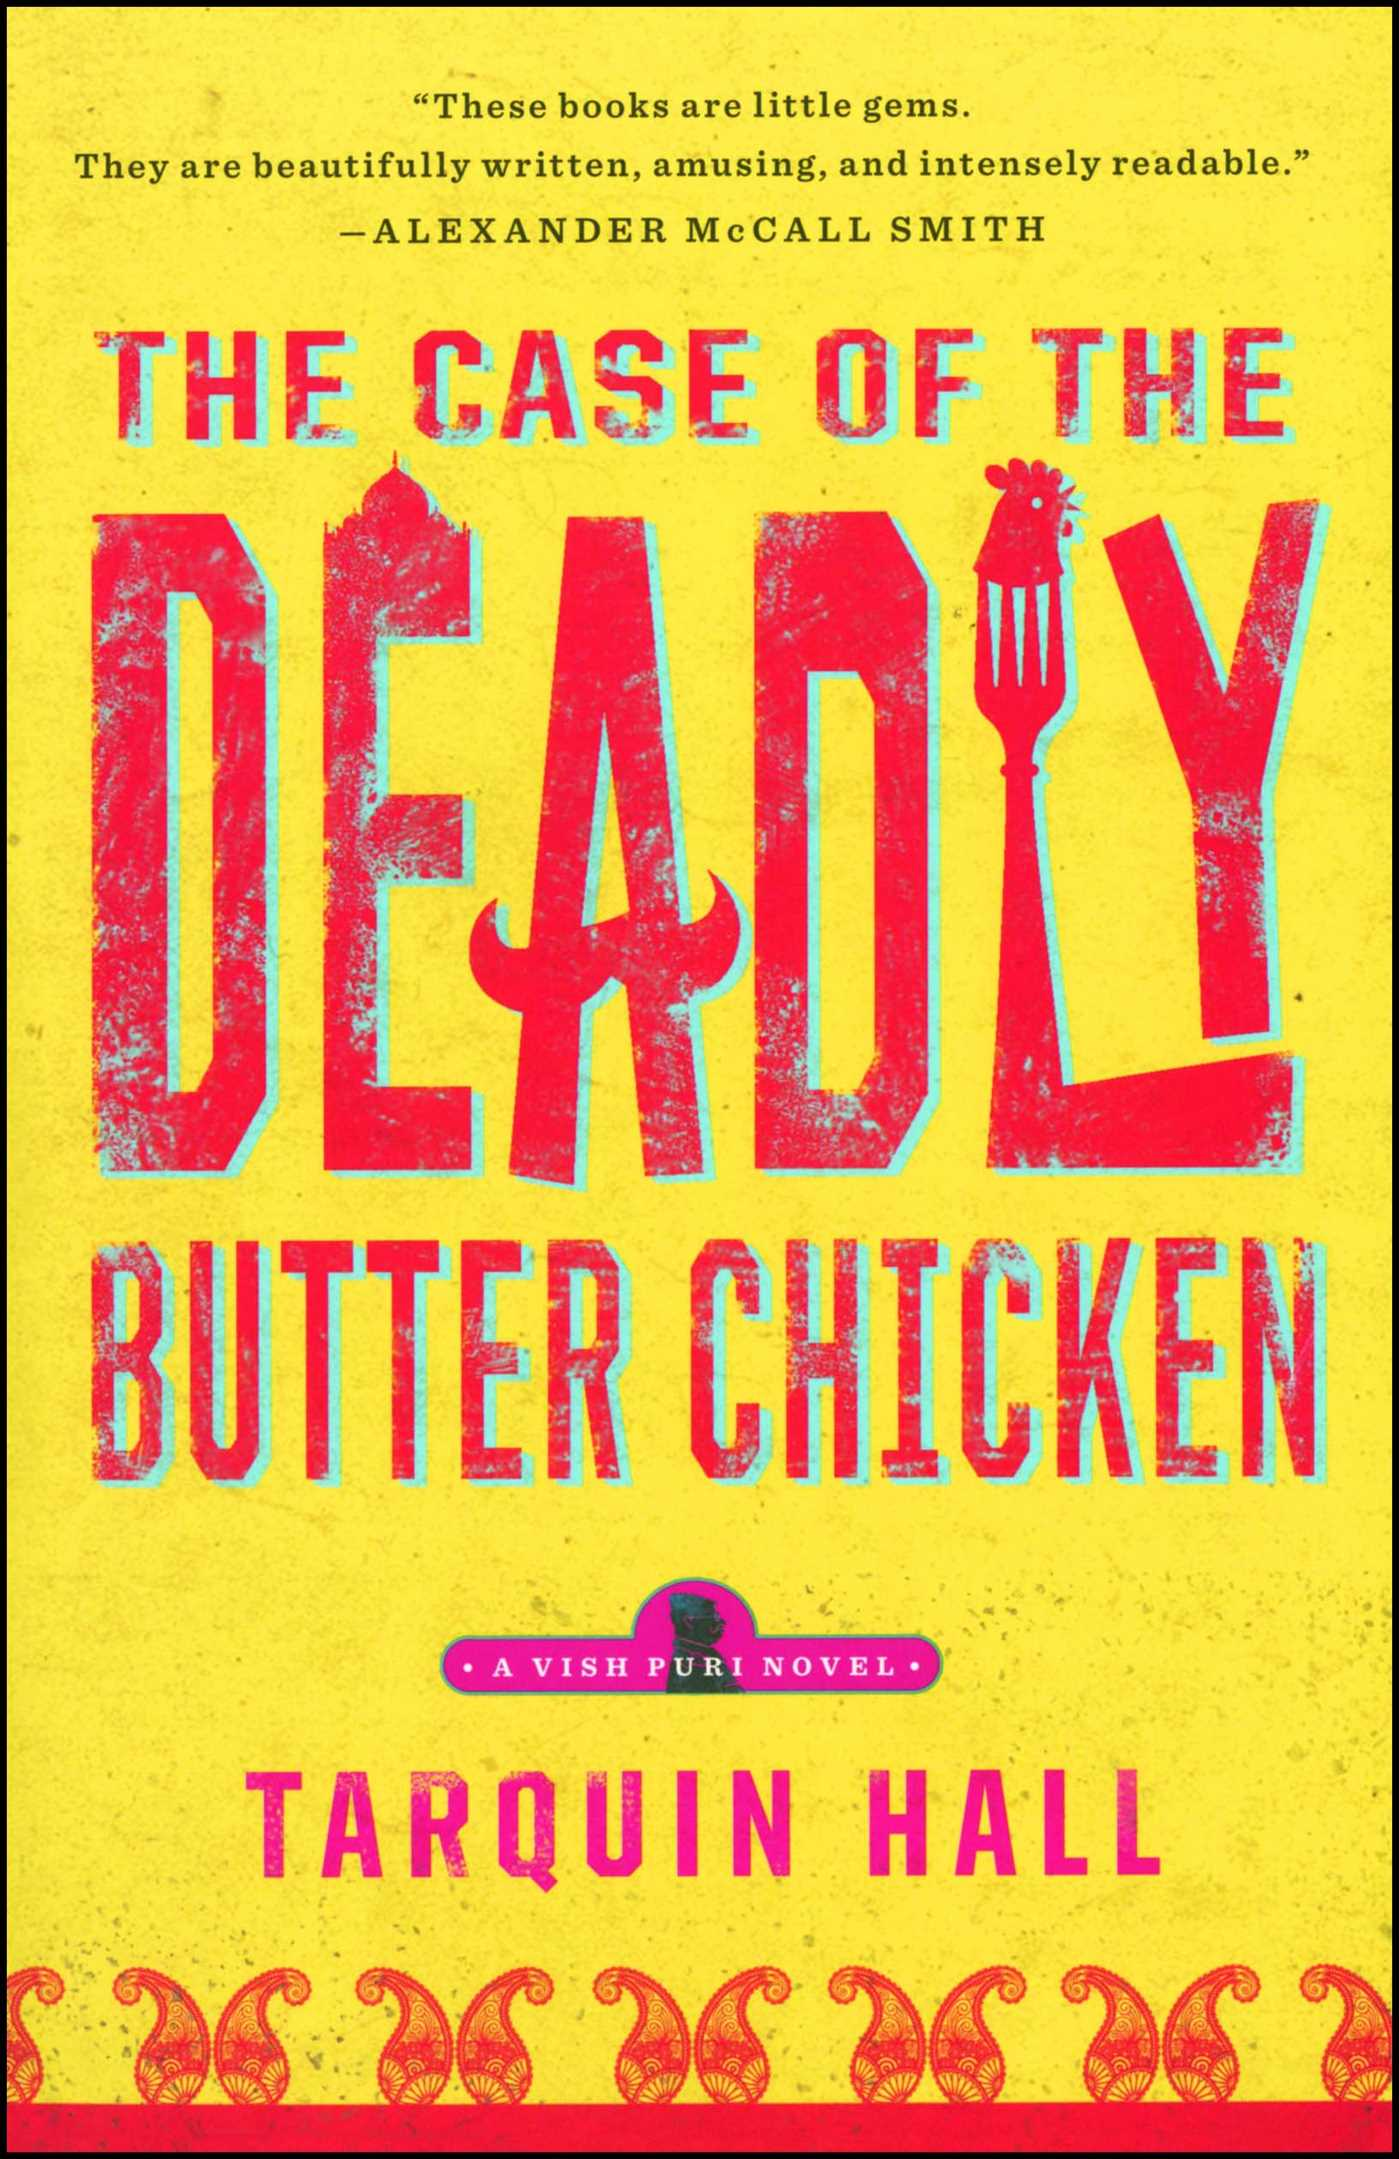 The case of the deadly butter chicken 9781451613179 hr